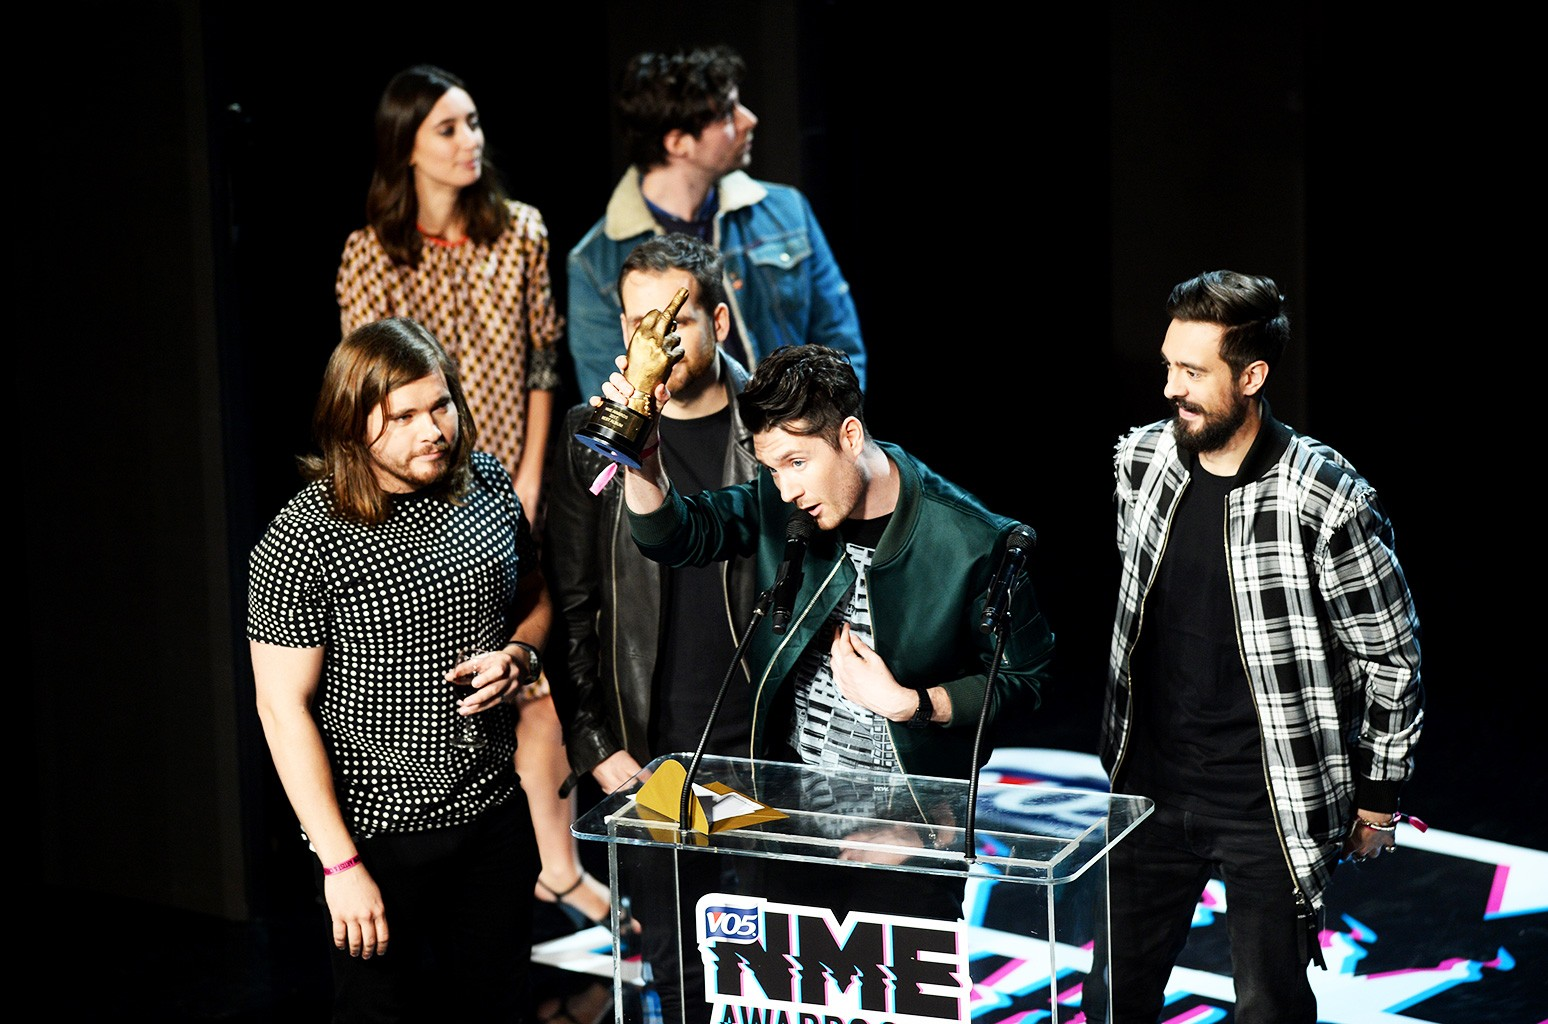 Bastille collect the award for Best Album during the VO5 NME Awards 2017 held at the O2 Brixton Academy, London.